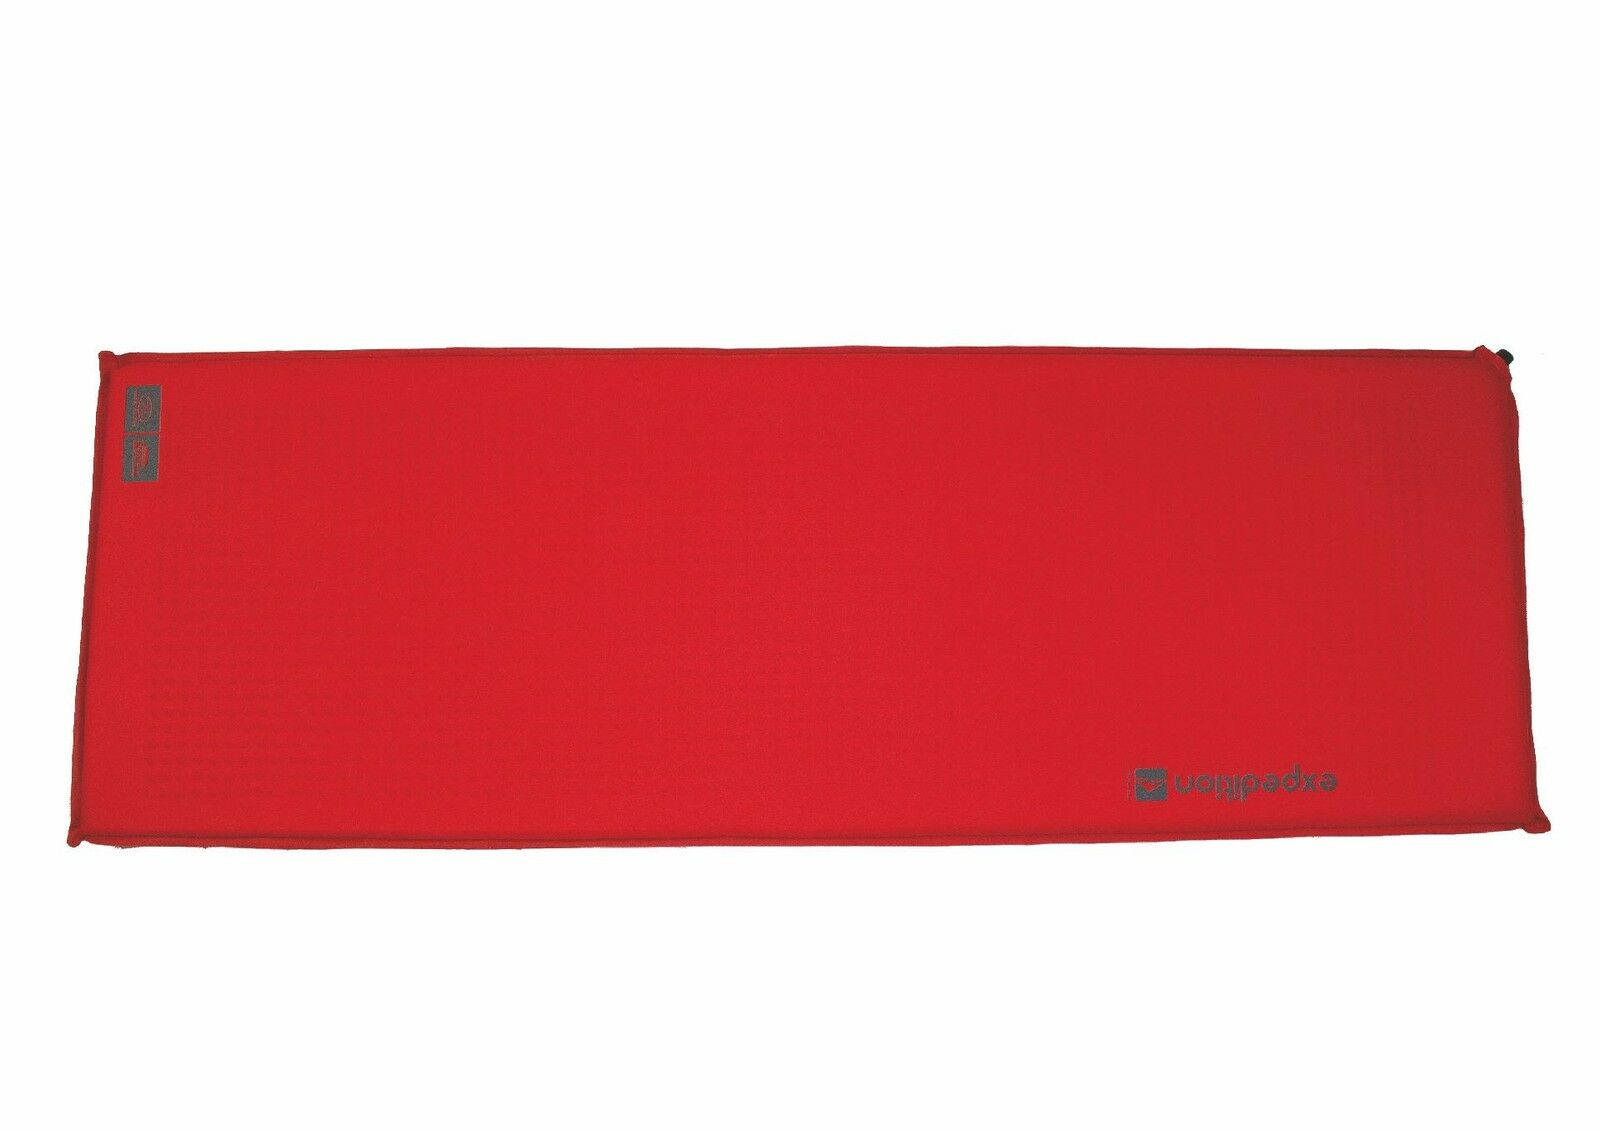 Expedition Self Inflate Mat - Top level Self-Inflating Sleeping Mat Camping